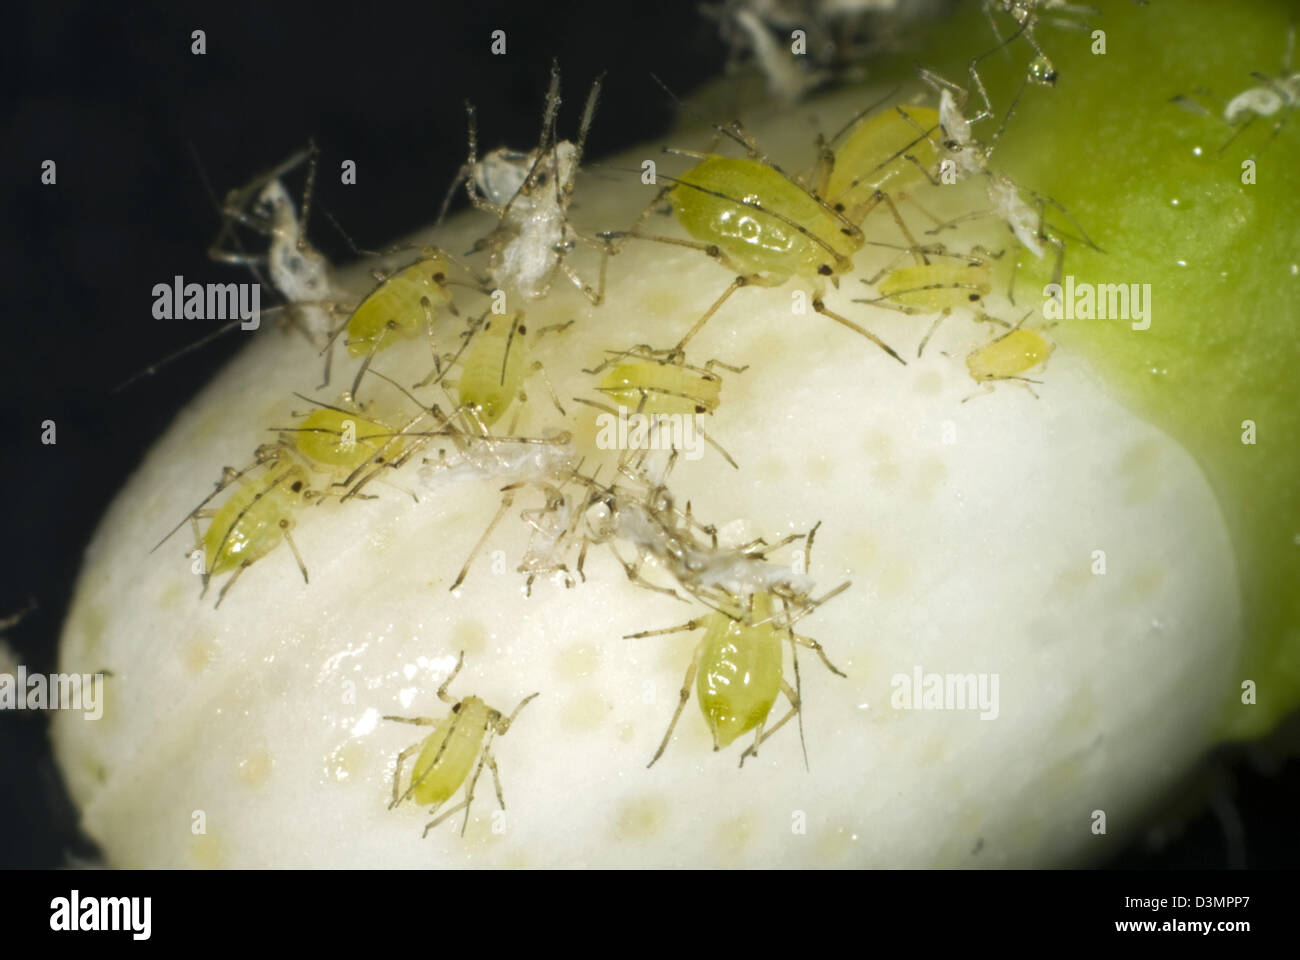 Mottled arum aphid, Aulacorthum circumflexum, infestation and honeydew on conservatory lemon flower buds - Stock Image